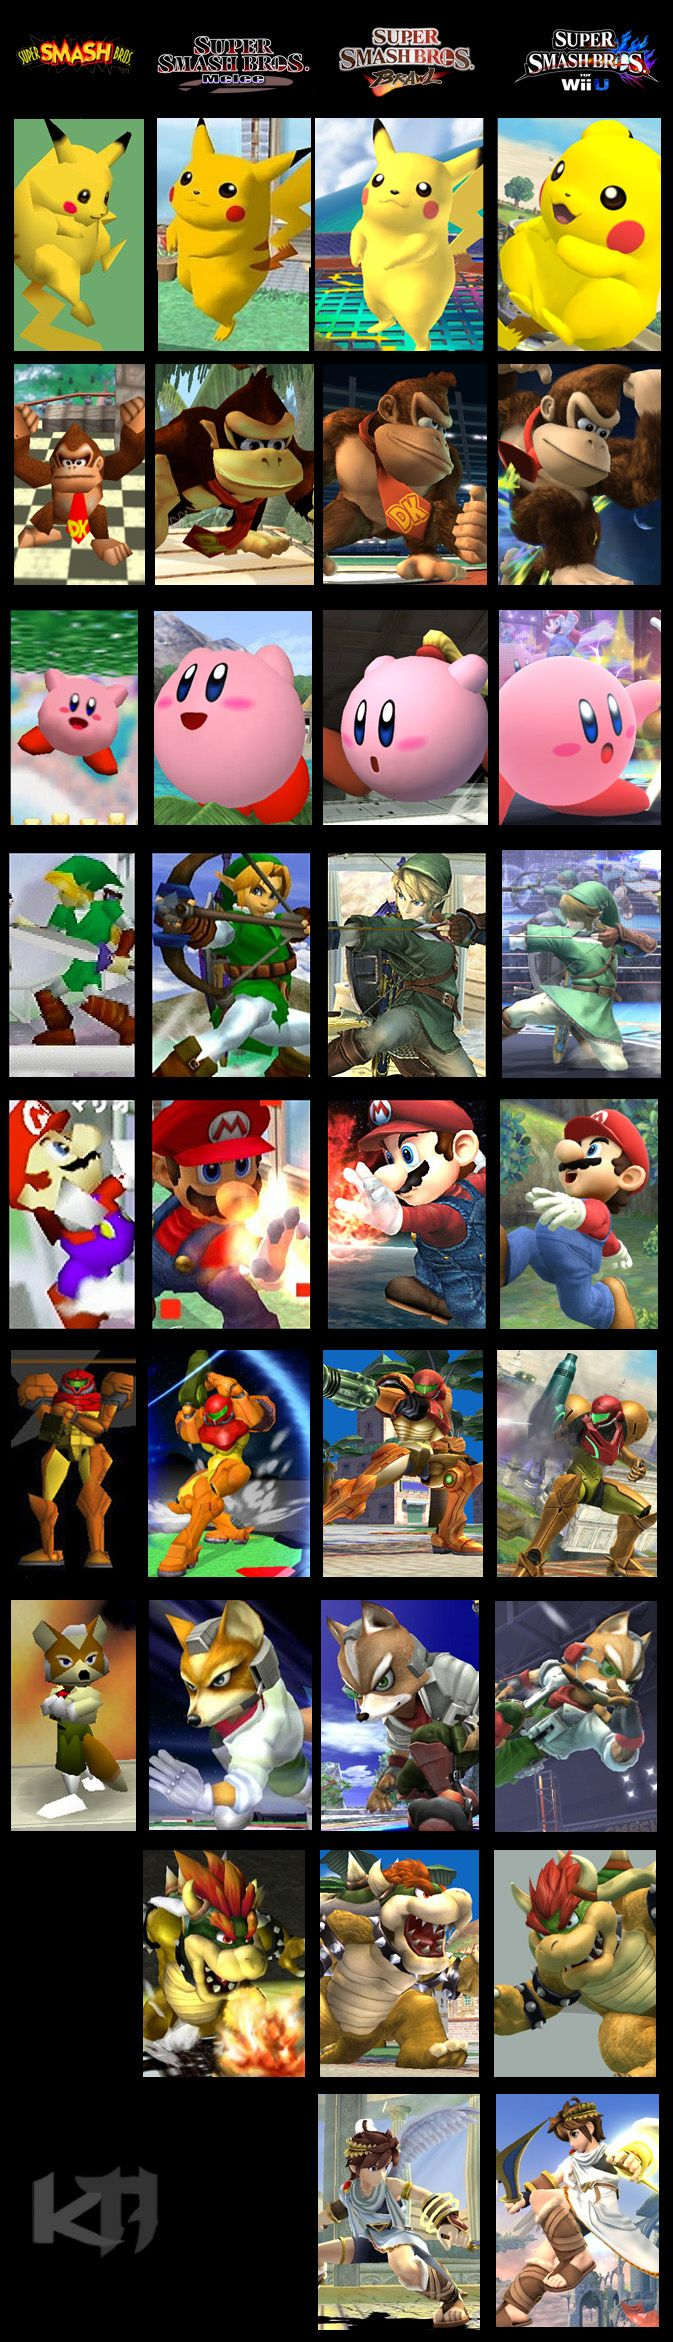 Sorry nintendo, but Pit looked better in Brawl....  Most of the chars looked better in brawl, wtf happened, this is not next gen -___-